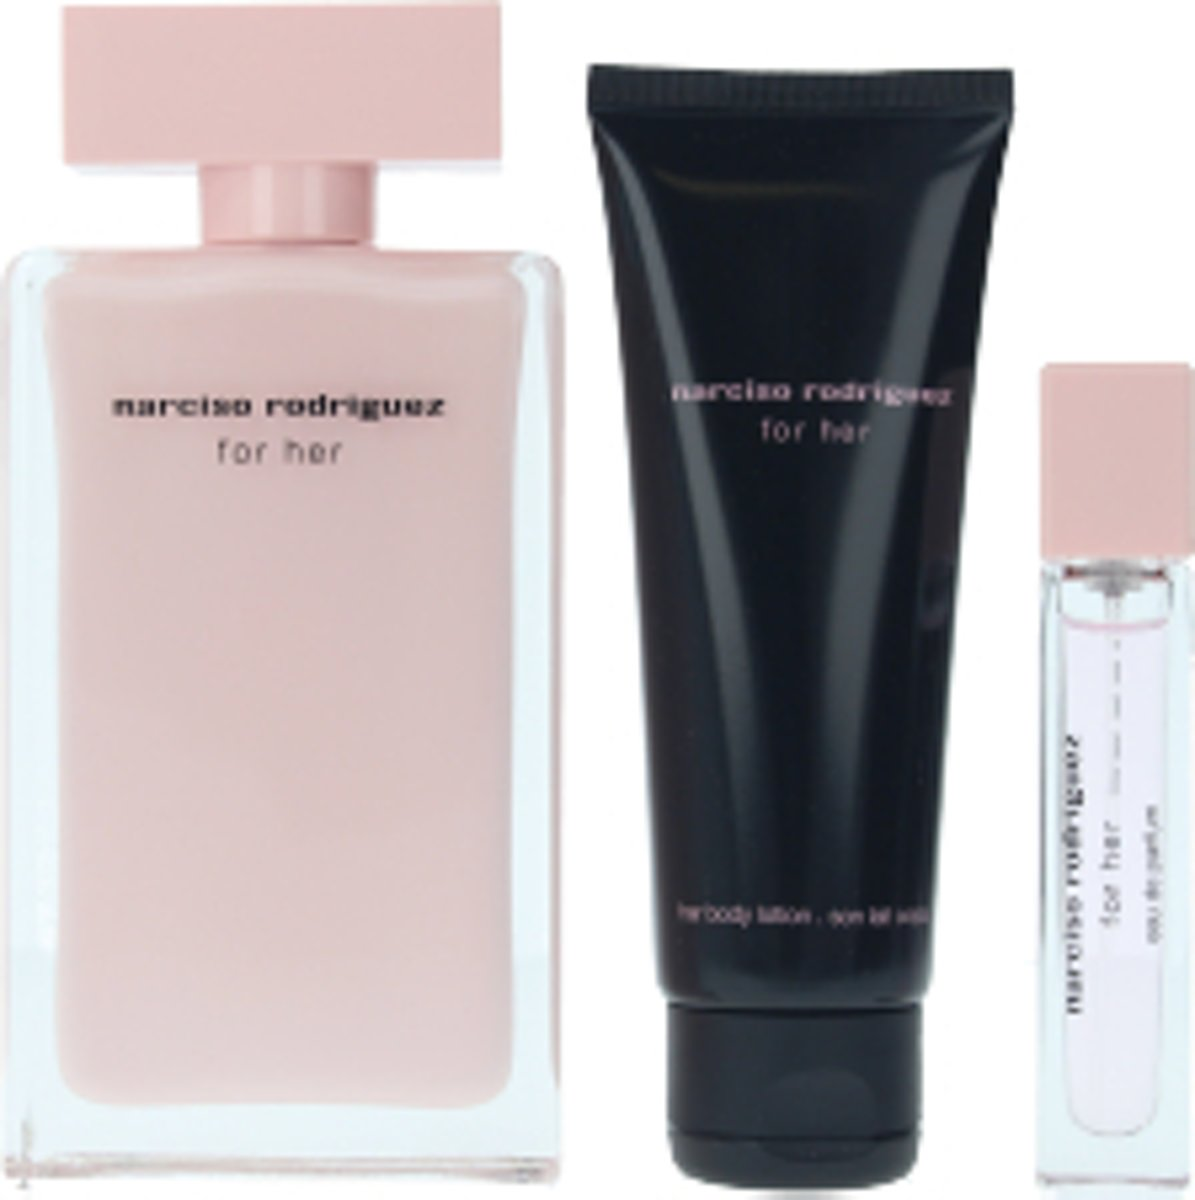 Nuxe Narciso Rodriguez For Her Eau De Perfume Spray 100ml Set 3 Pieces 2019